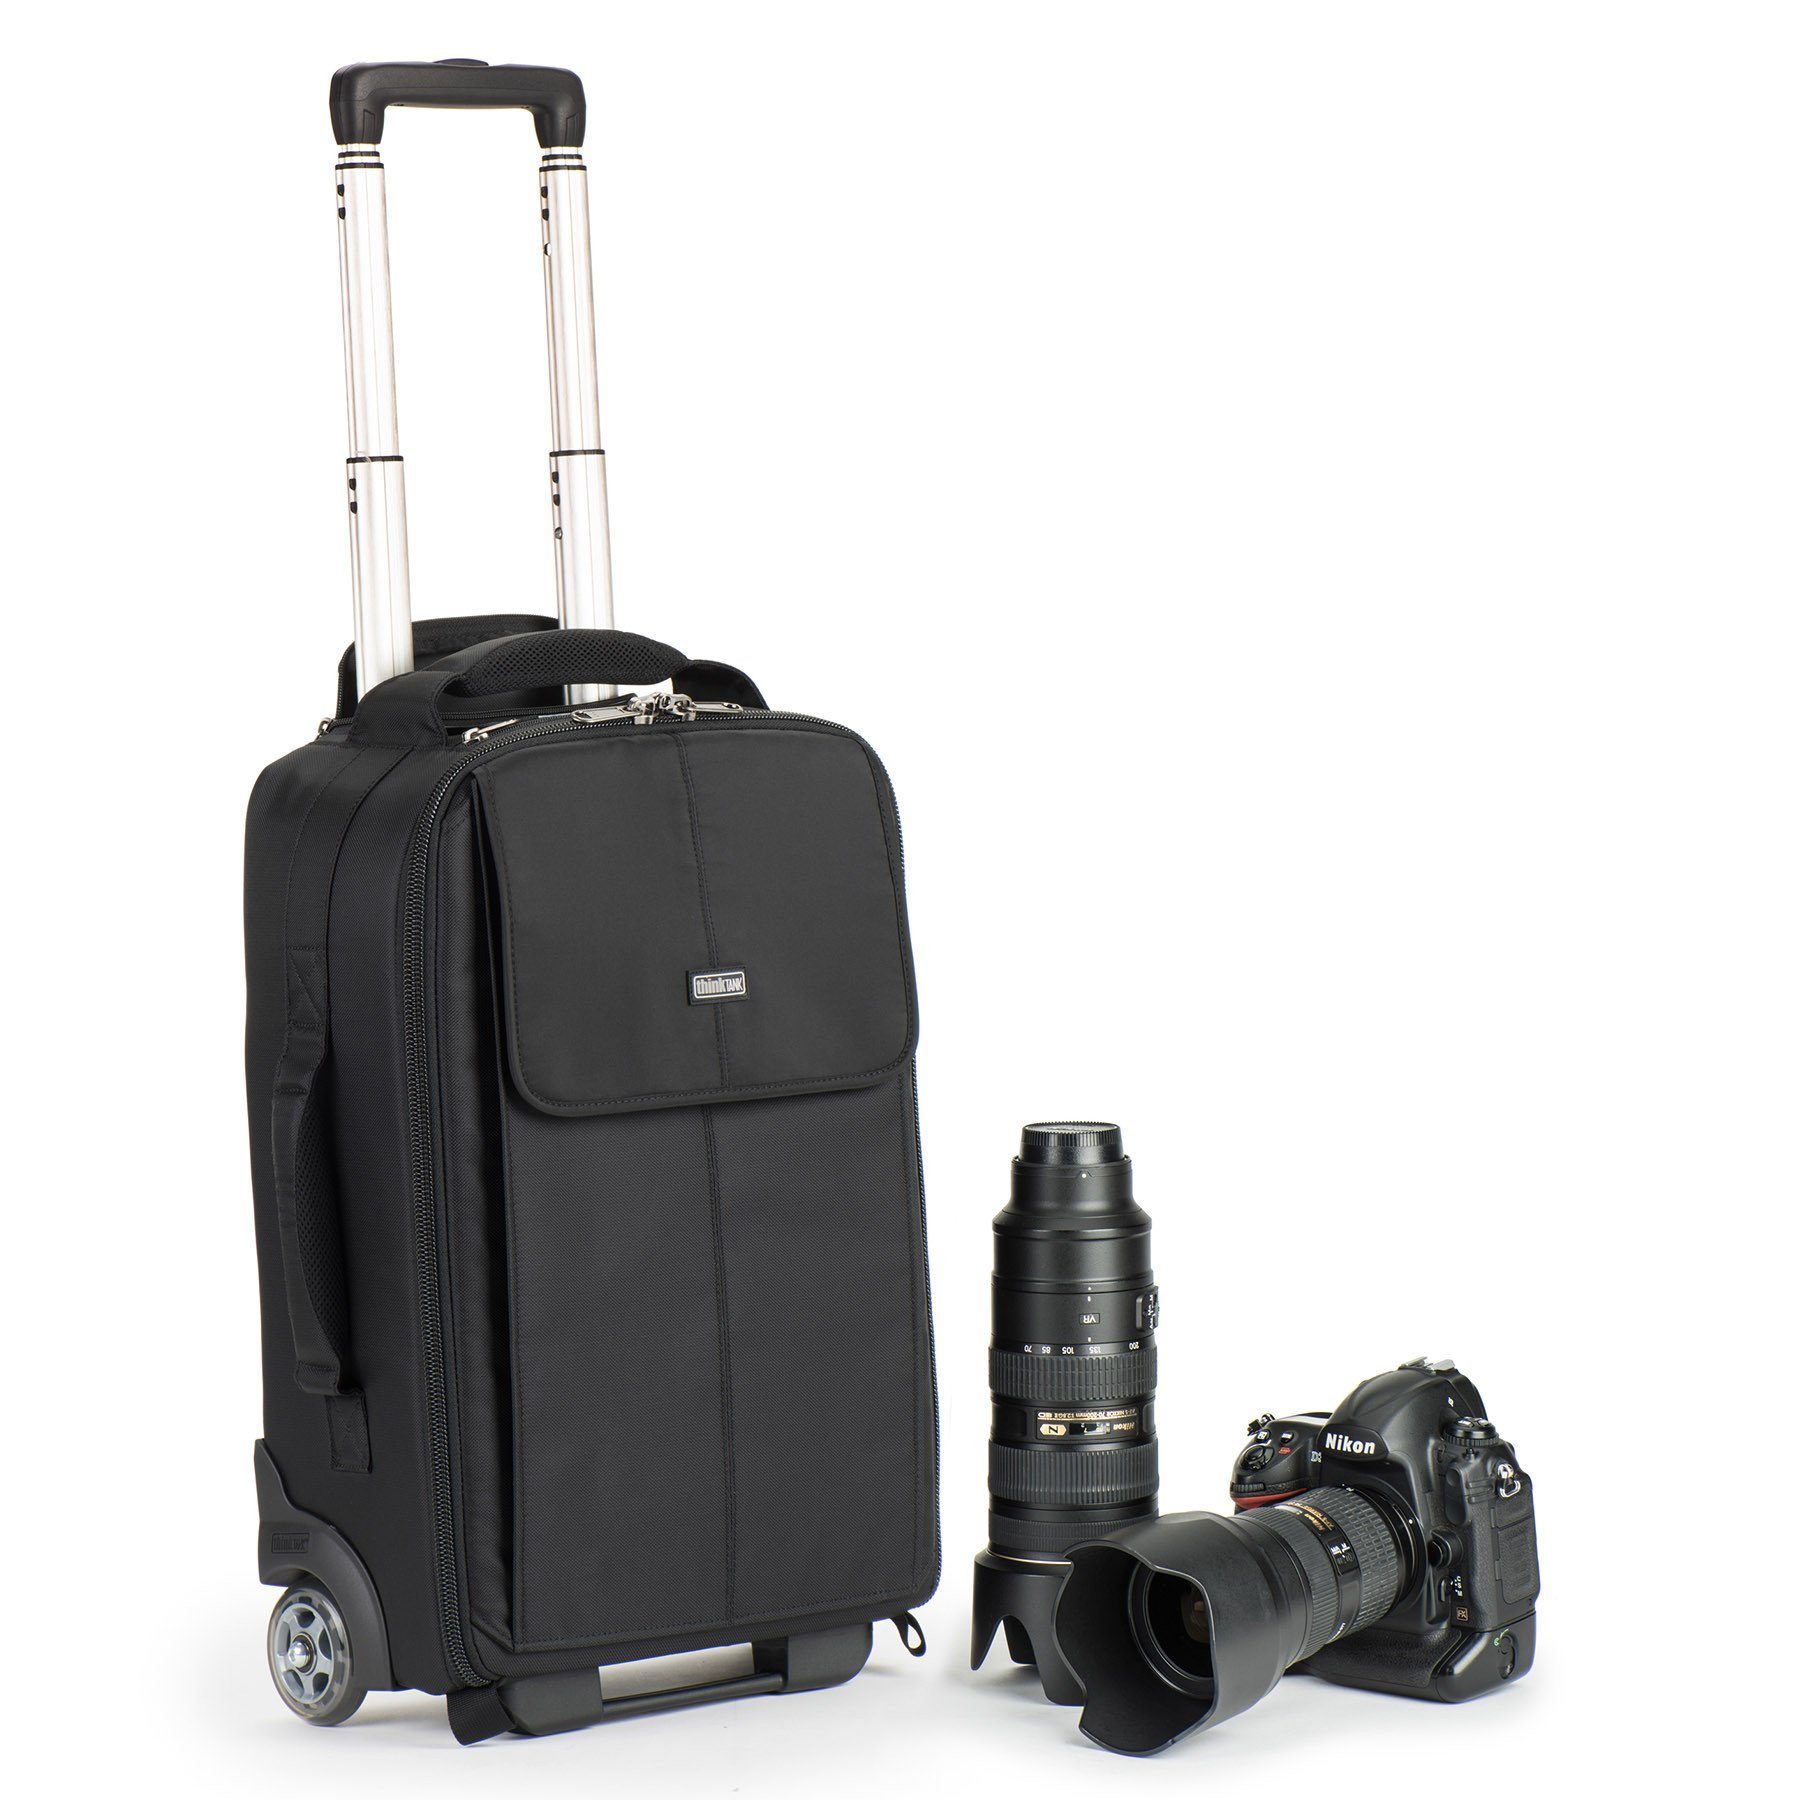 Airport Advantage Rolling Carry-On Camera Bag - Black by Think Tank